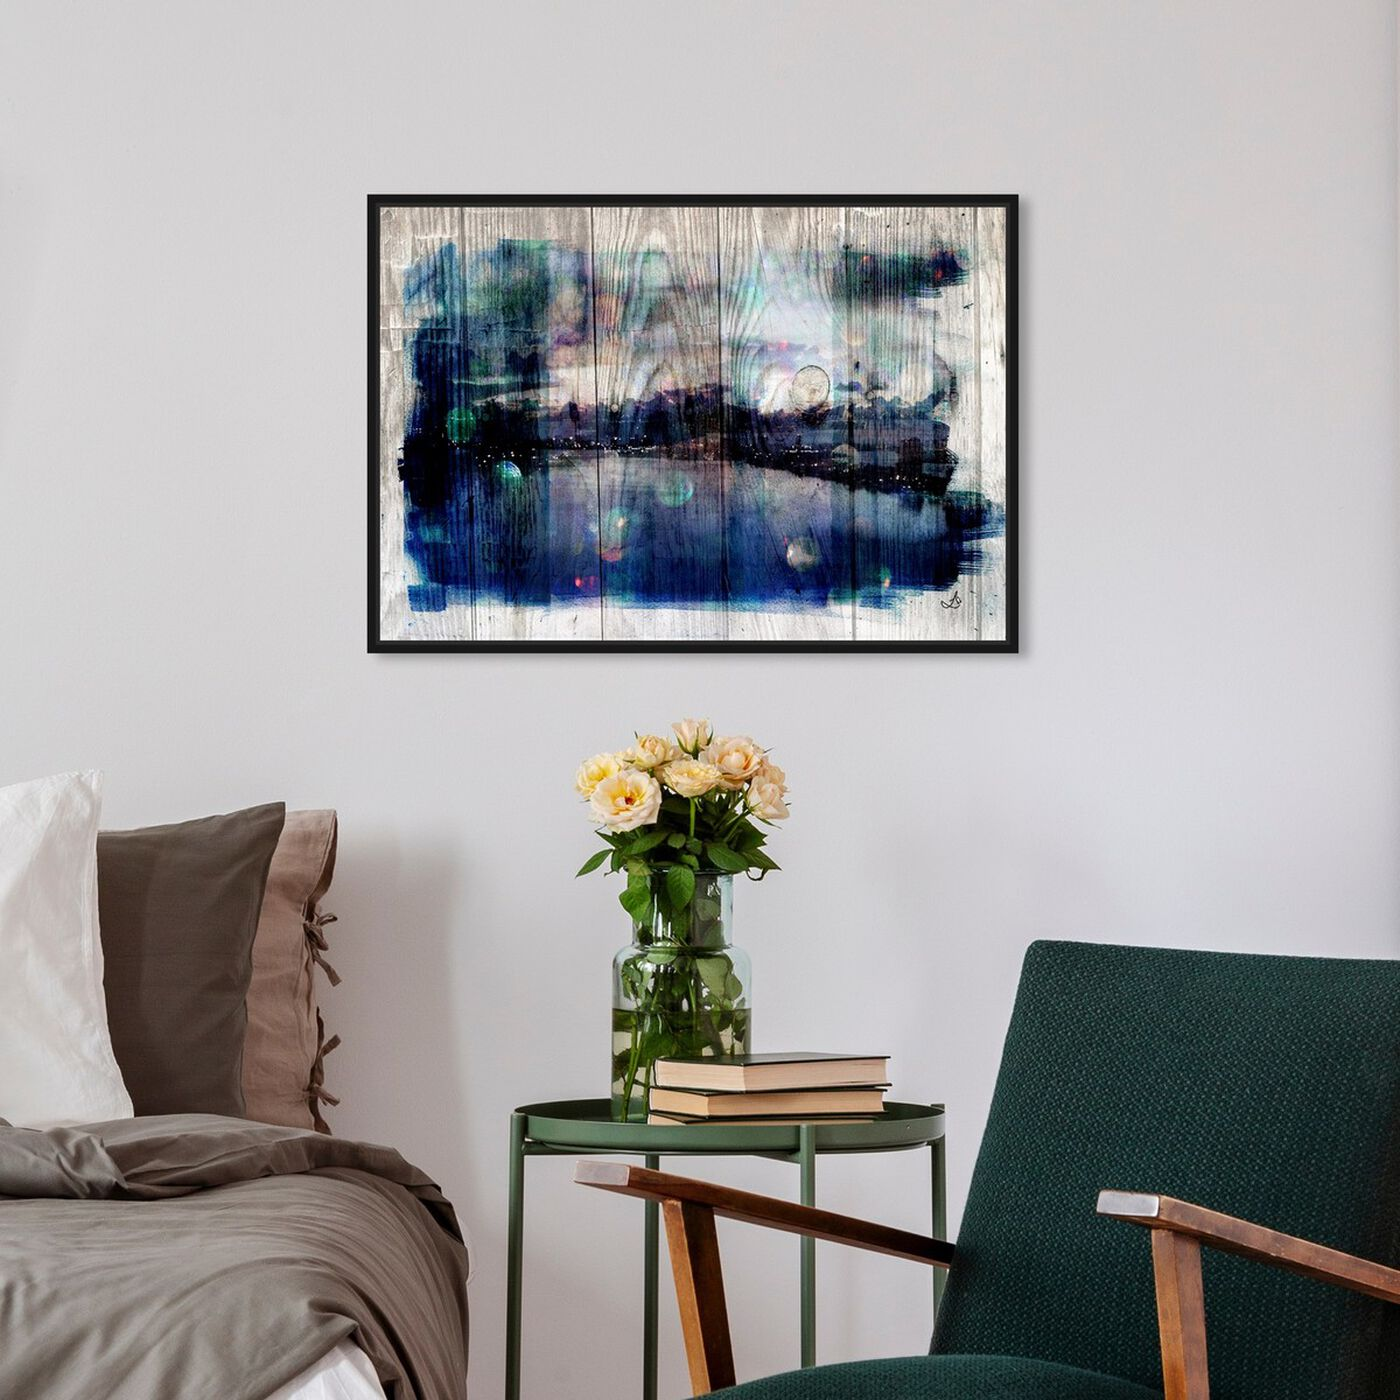 Hanging view of Coastal Dream featuring abstract and paint art.